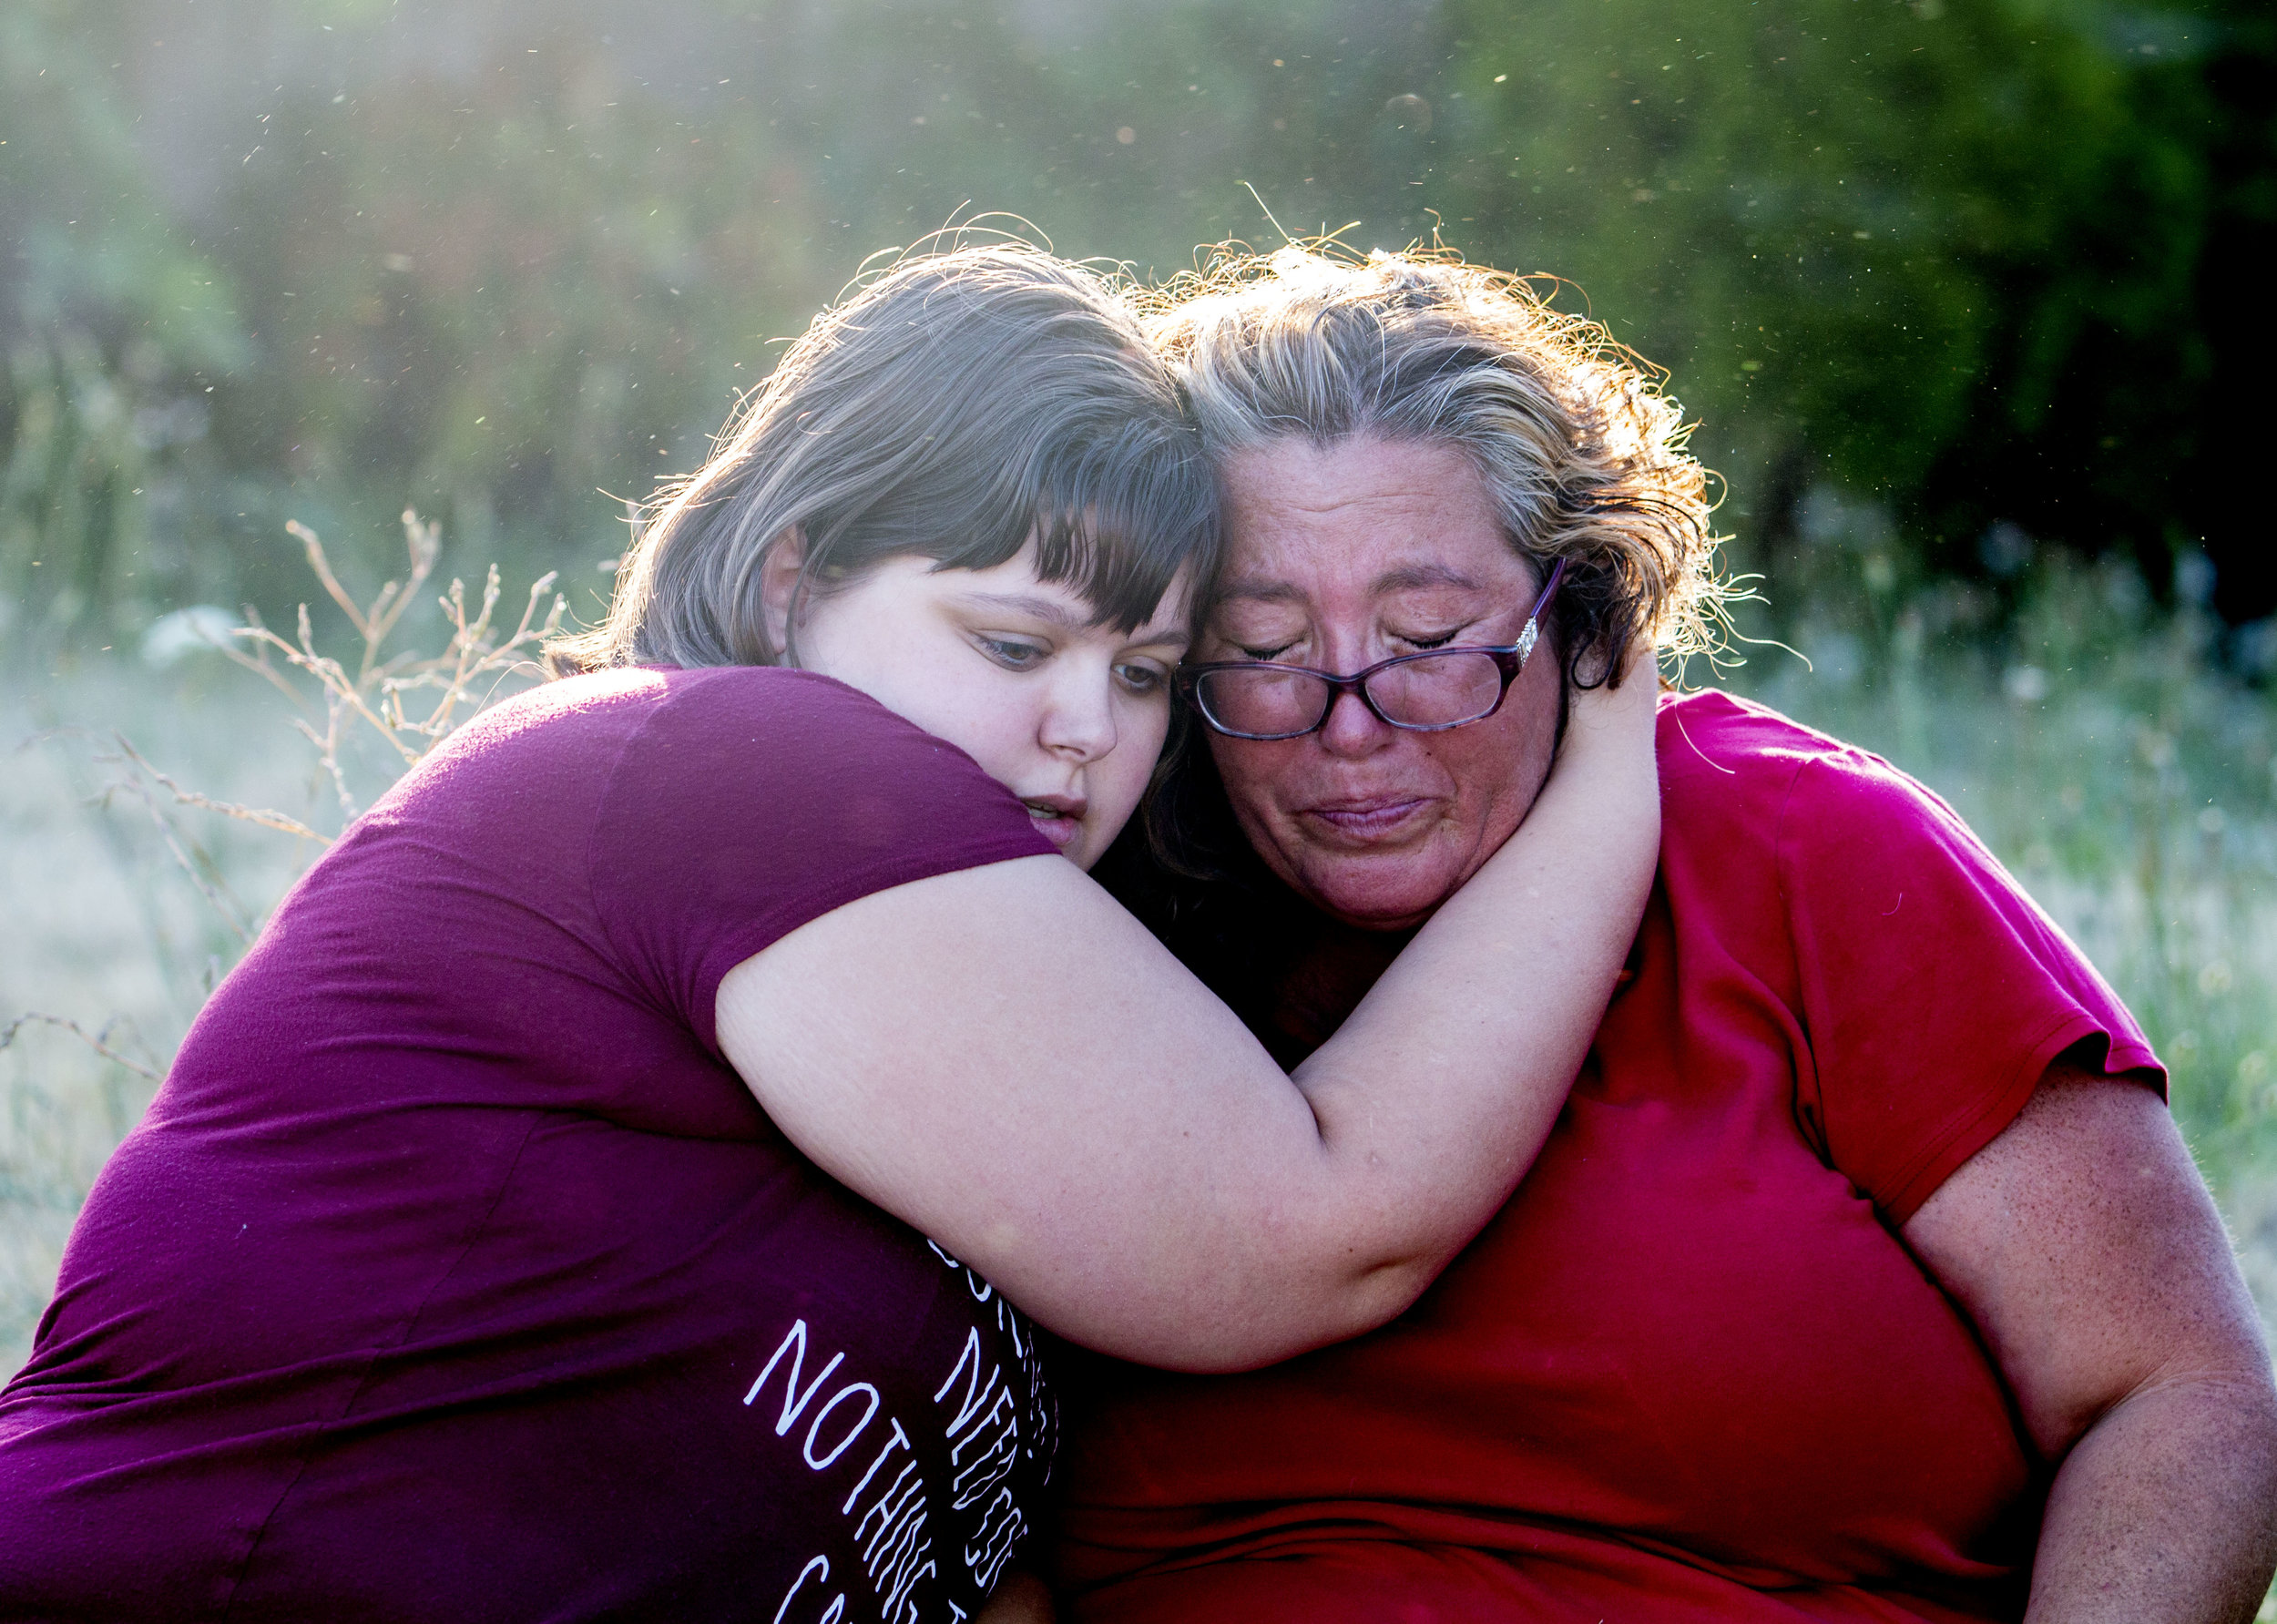 Breanna Evans (left) consoles Jean Schaible after Schaible's mother's house went up in flames on her mothers birthday.Both Schaible and her mother Shirley Henson were able to safely make it out of the house with the help of neighbor Nolan Nease, 19, who ran into the house and helped carry Shirley and her wheelchair to safety. The damage to the house made it inhabitable, meaning it would have to be torn down.